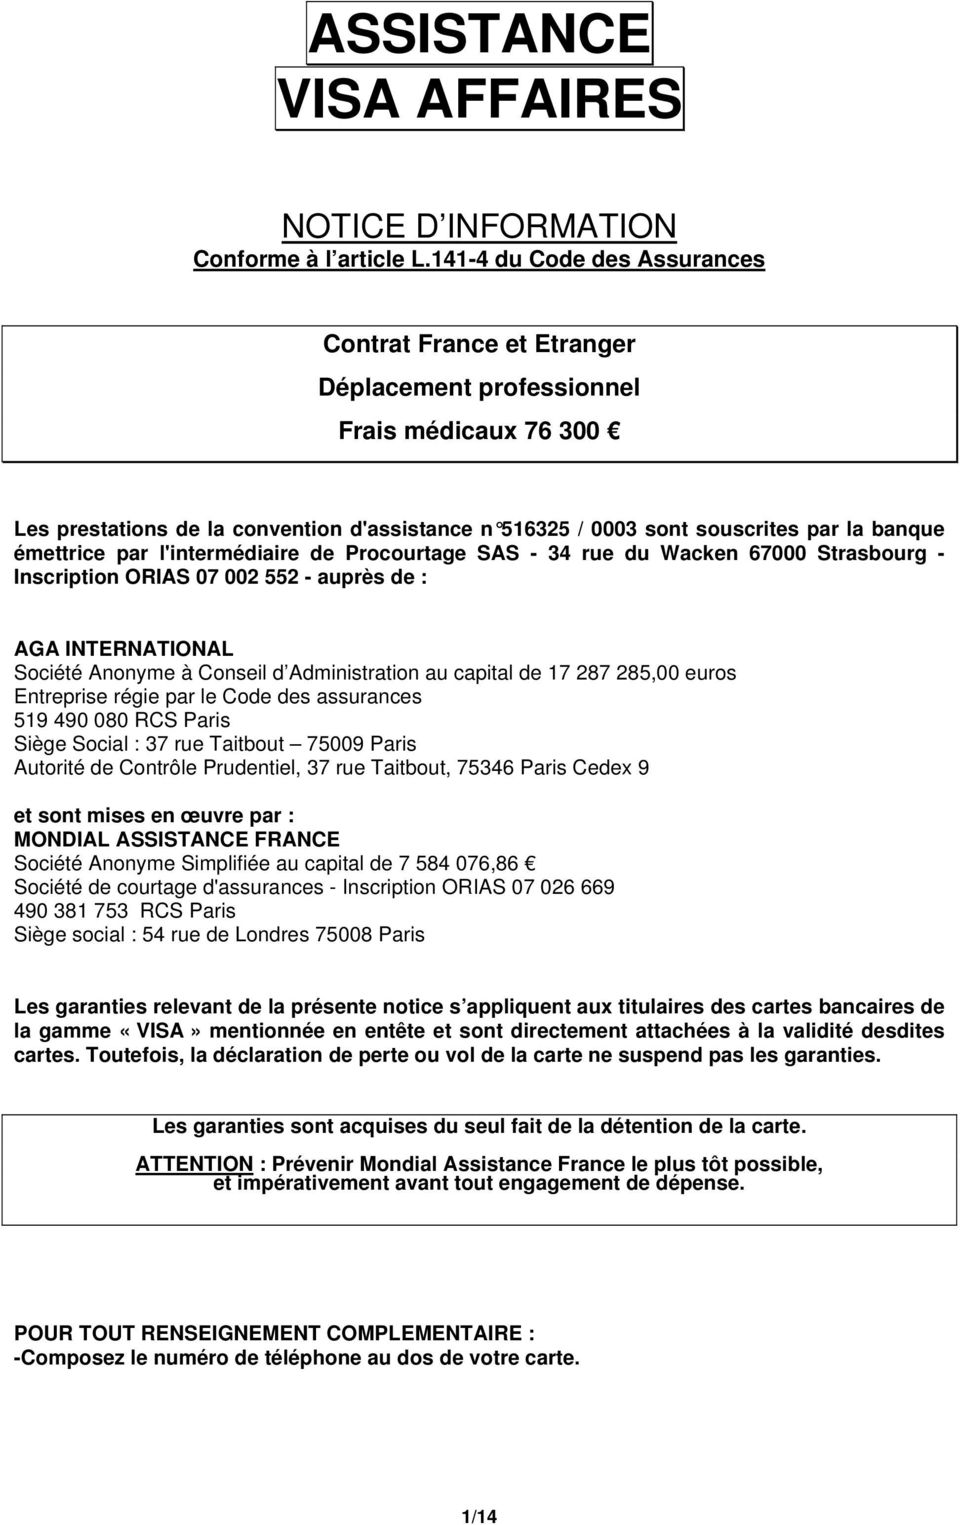 émettrice par l'intermédiaire de Procourtage SAS - 34 rue du Wacken 67000 Strasbourg - Inscription ORIAS 07 002 552 - auprès de : AGA INTERNATIONAL Société Ayme à Conseil d Administration au capital